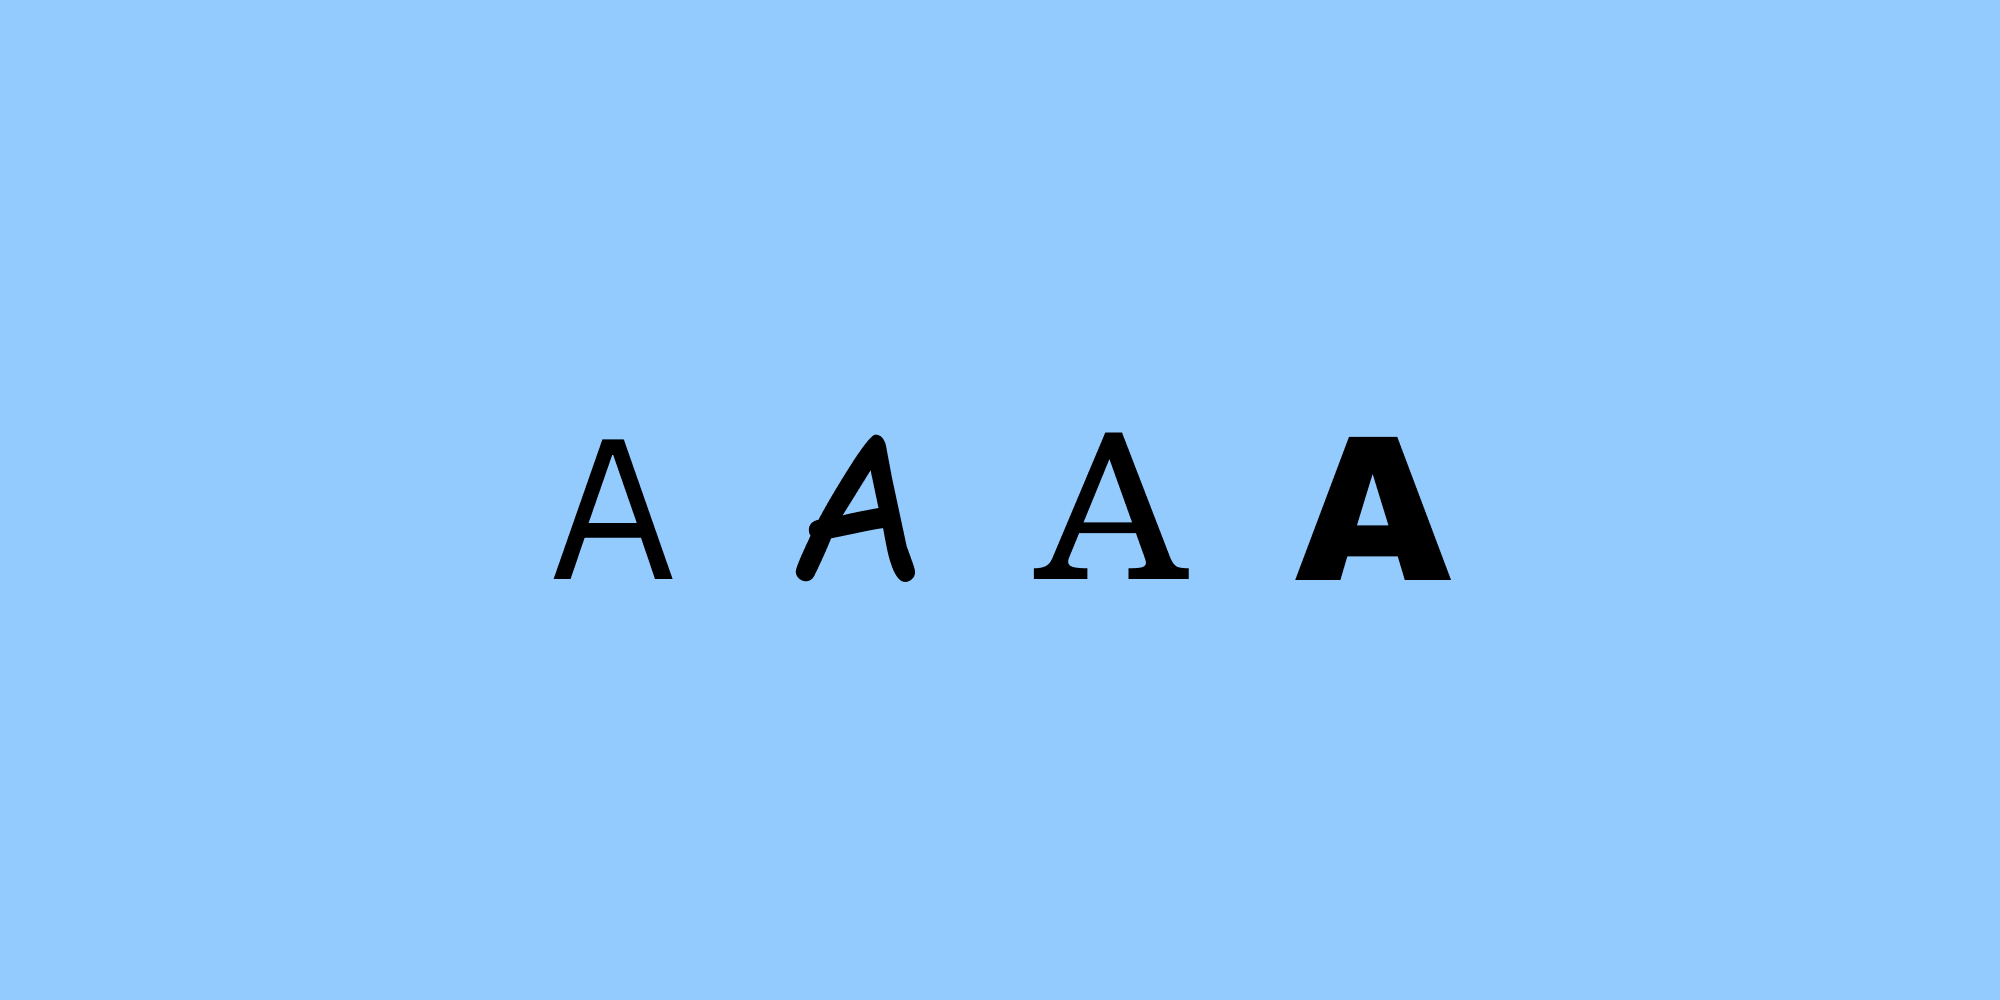 Graphic image of the letter A in 4 different typefaces on a light blue background.